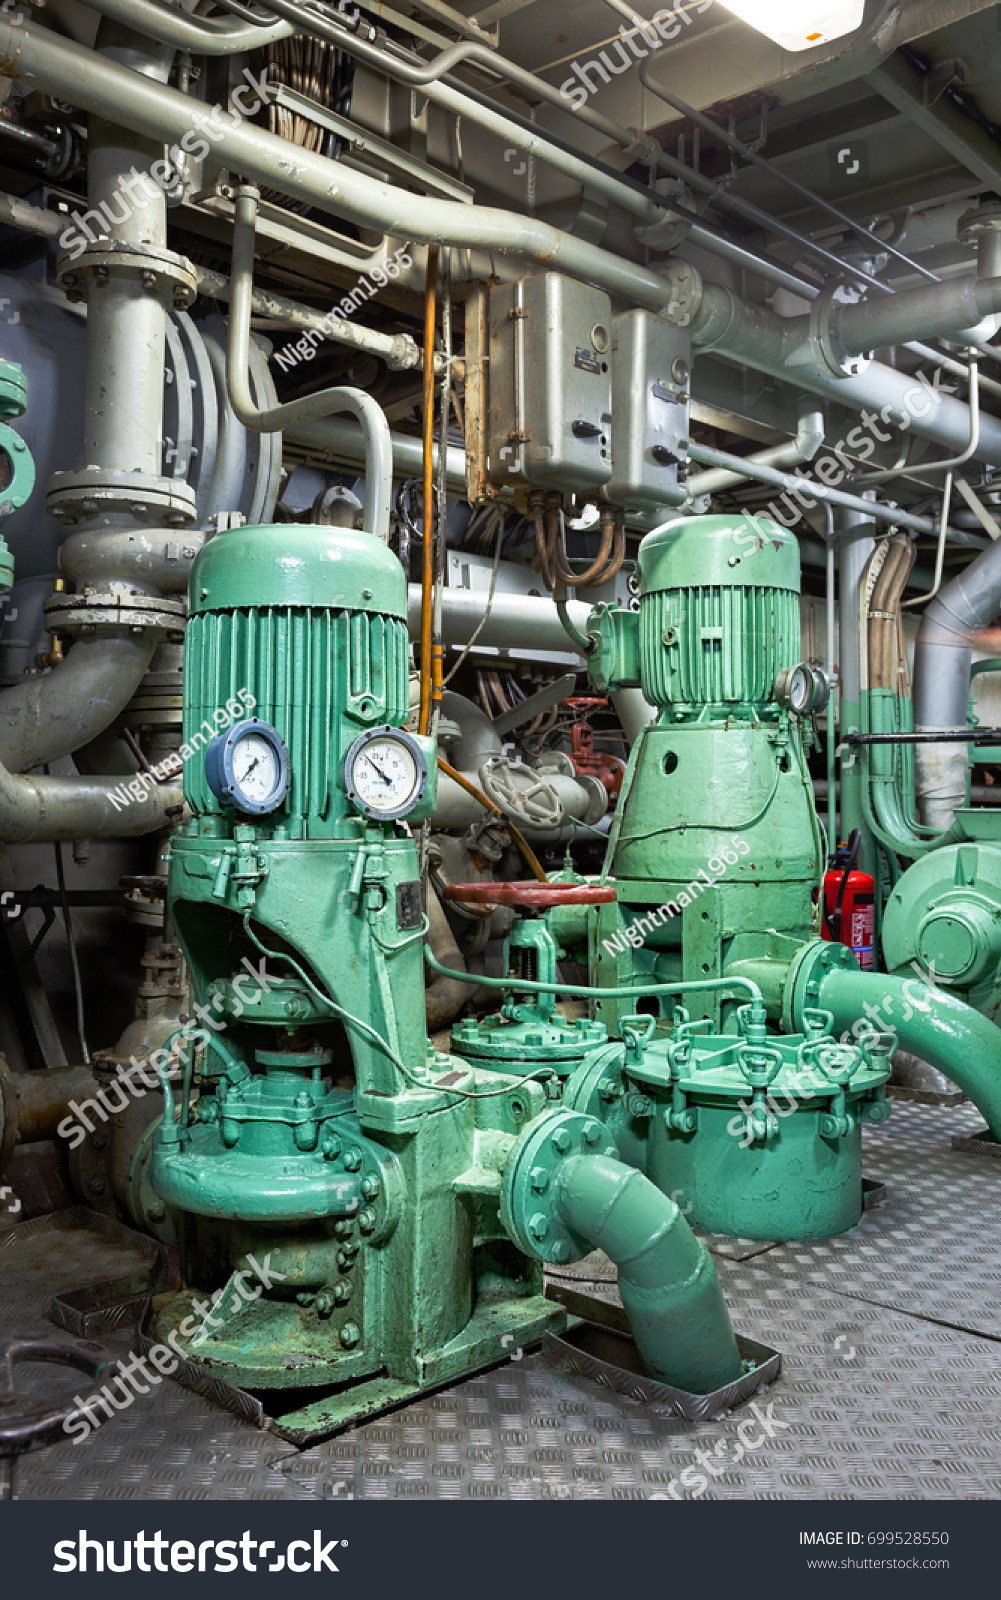 Spaceship Engine Room: Engine Water Pumps Pump Room Ship Stock Photo 699528550